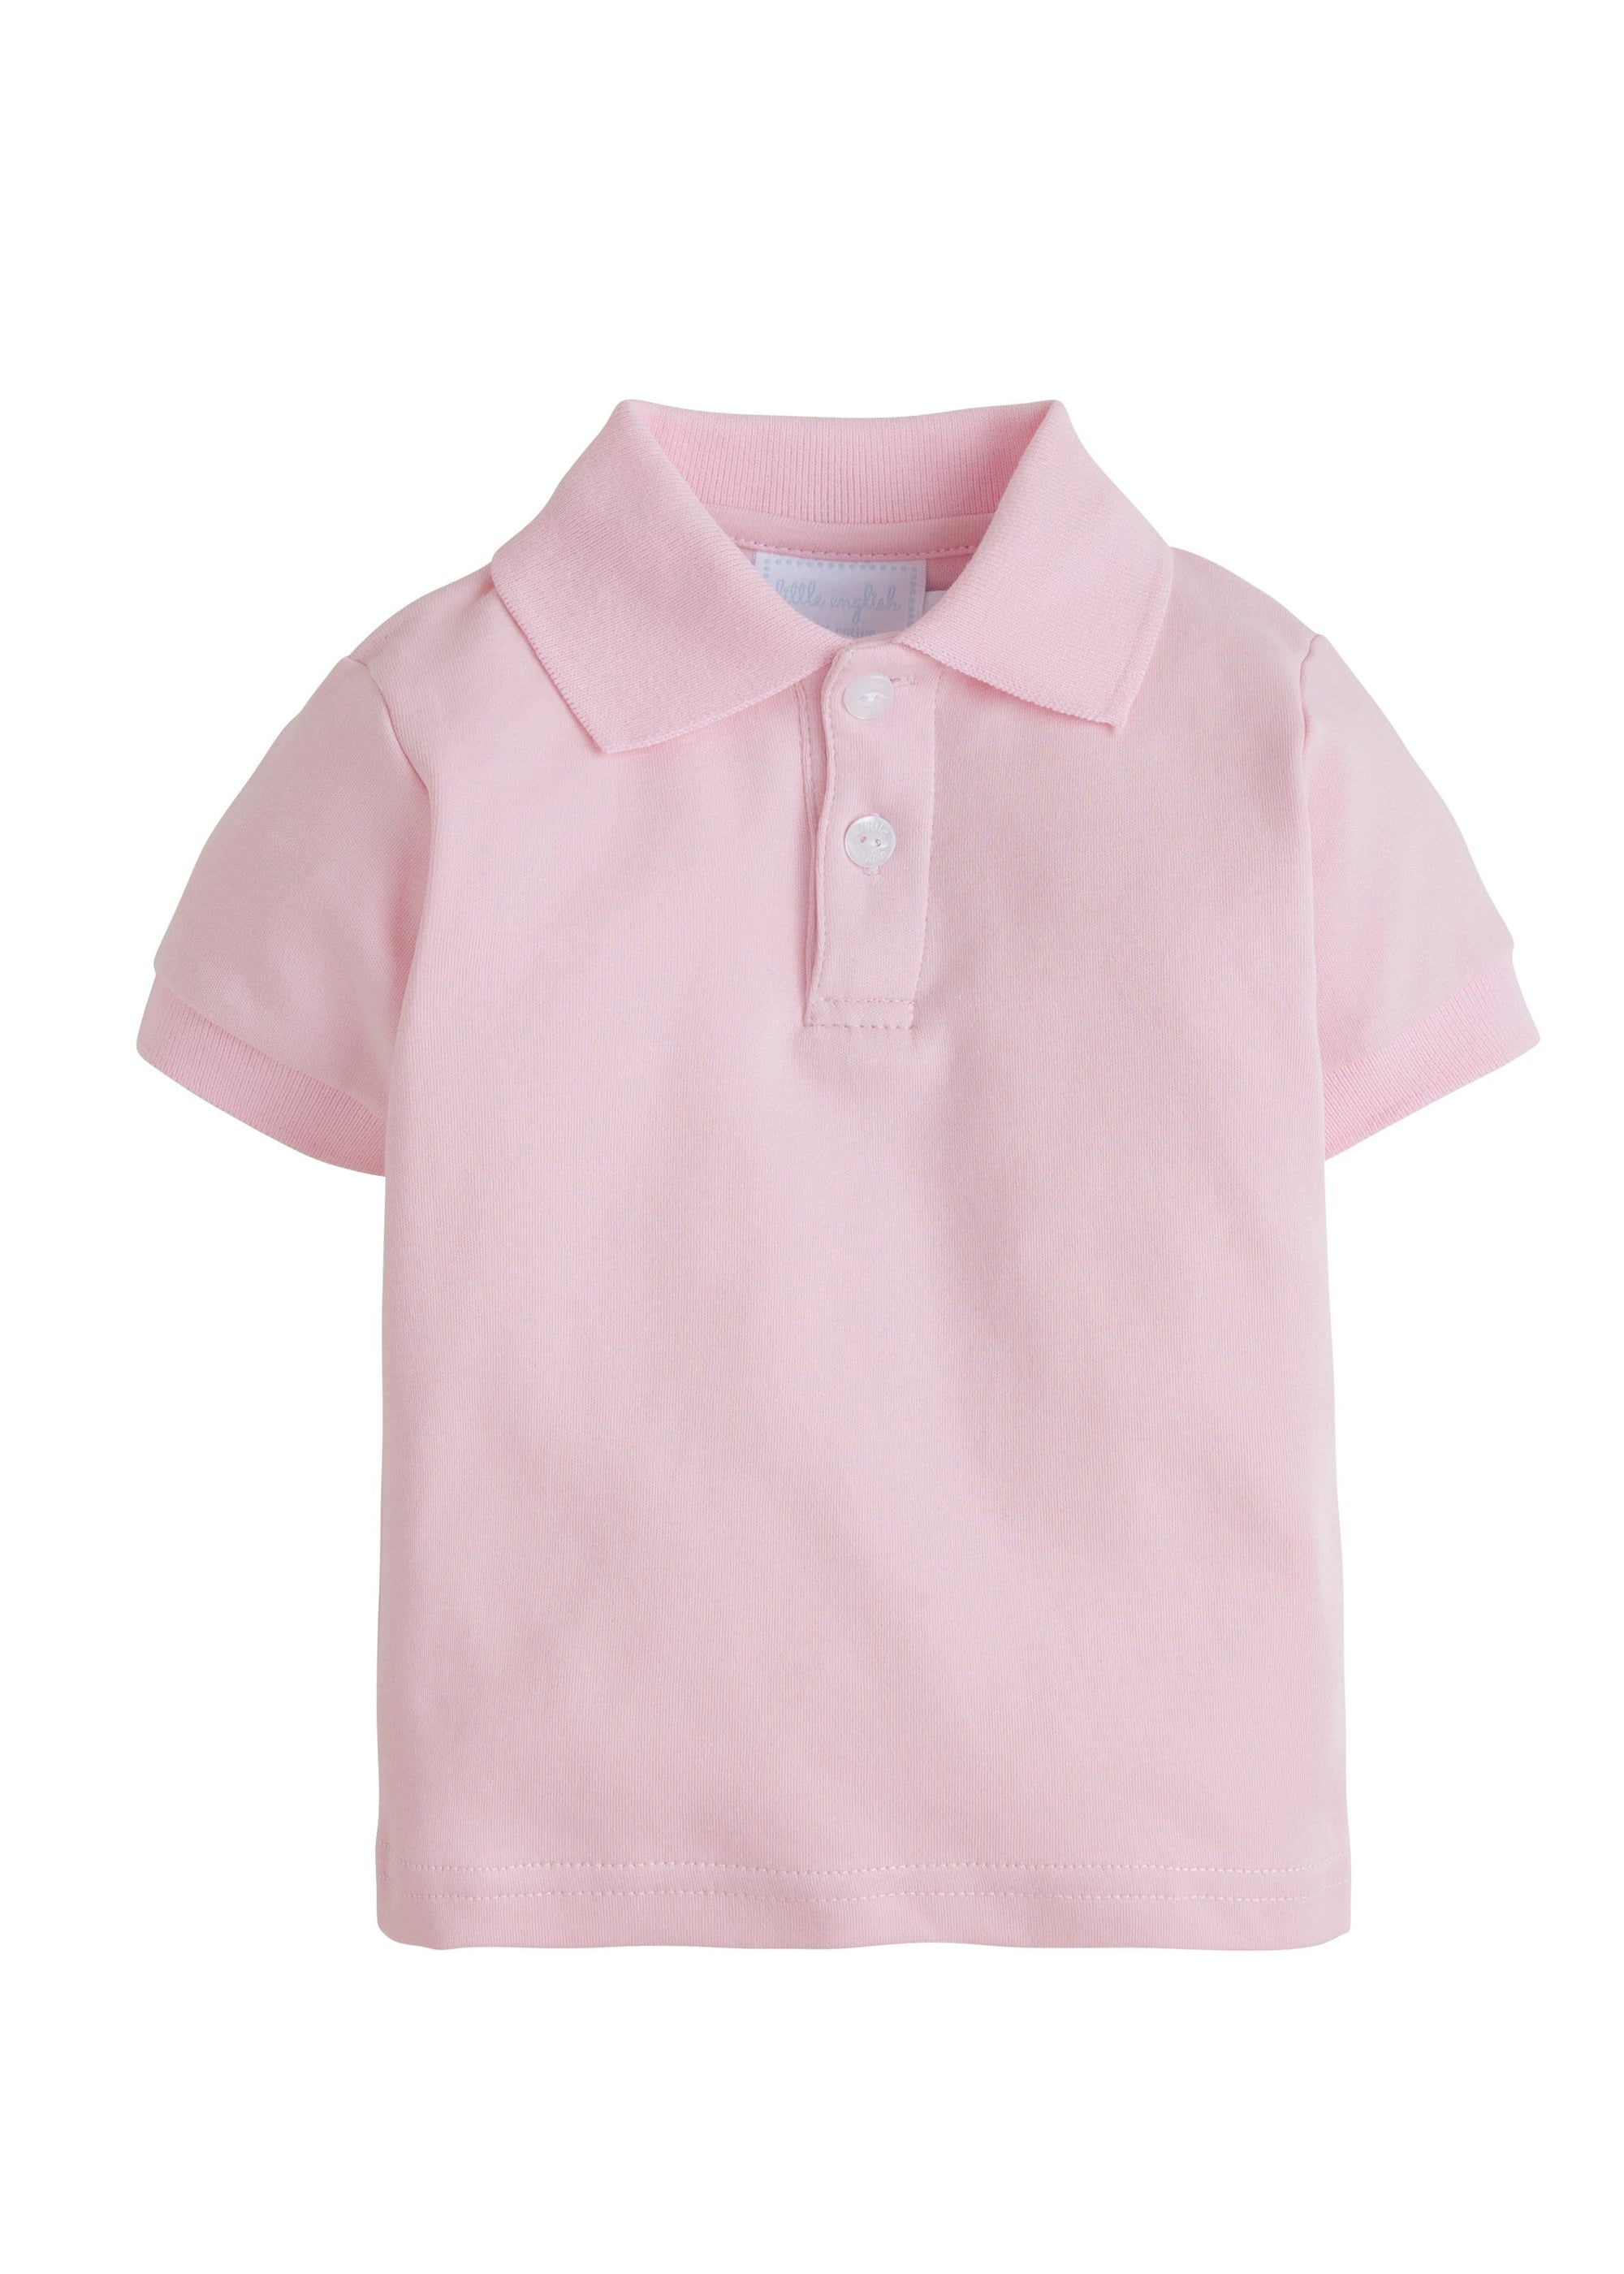 Solid Polo - Pink, Little English, classic children's clothing, preppy children's clothing, traditional children's clothing, classic baby clothing, traditional baby clothing